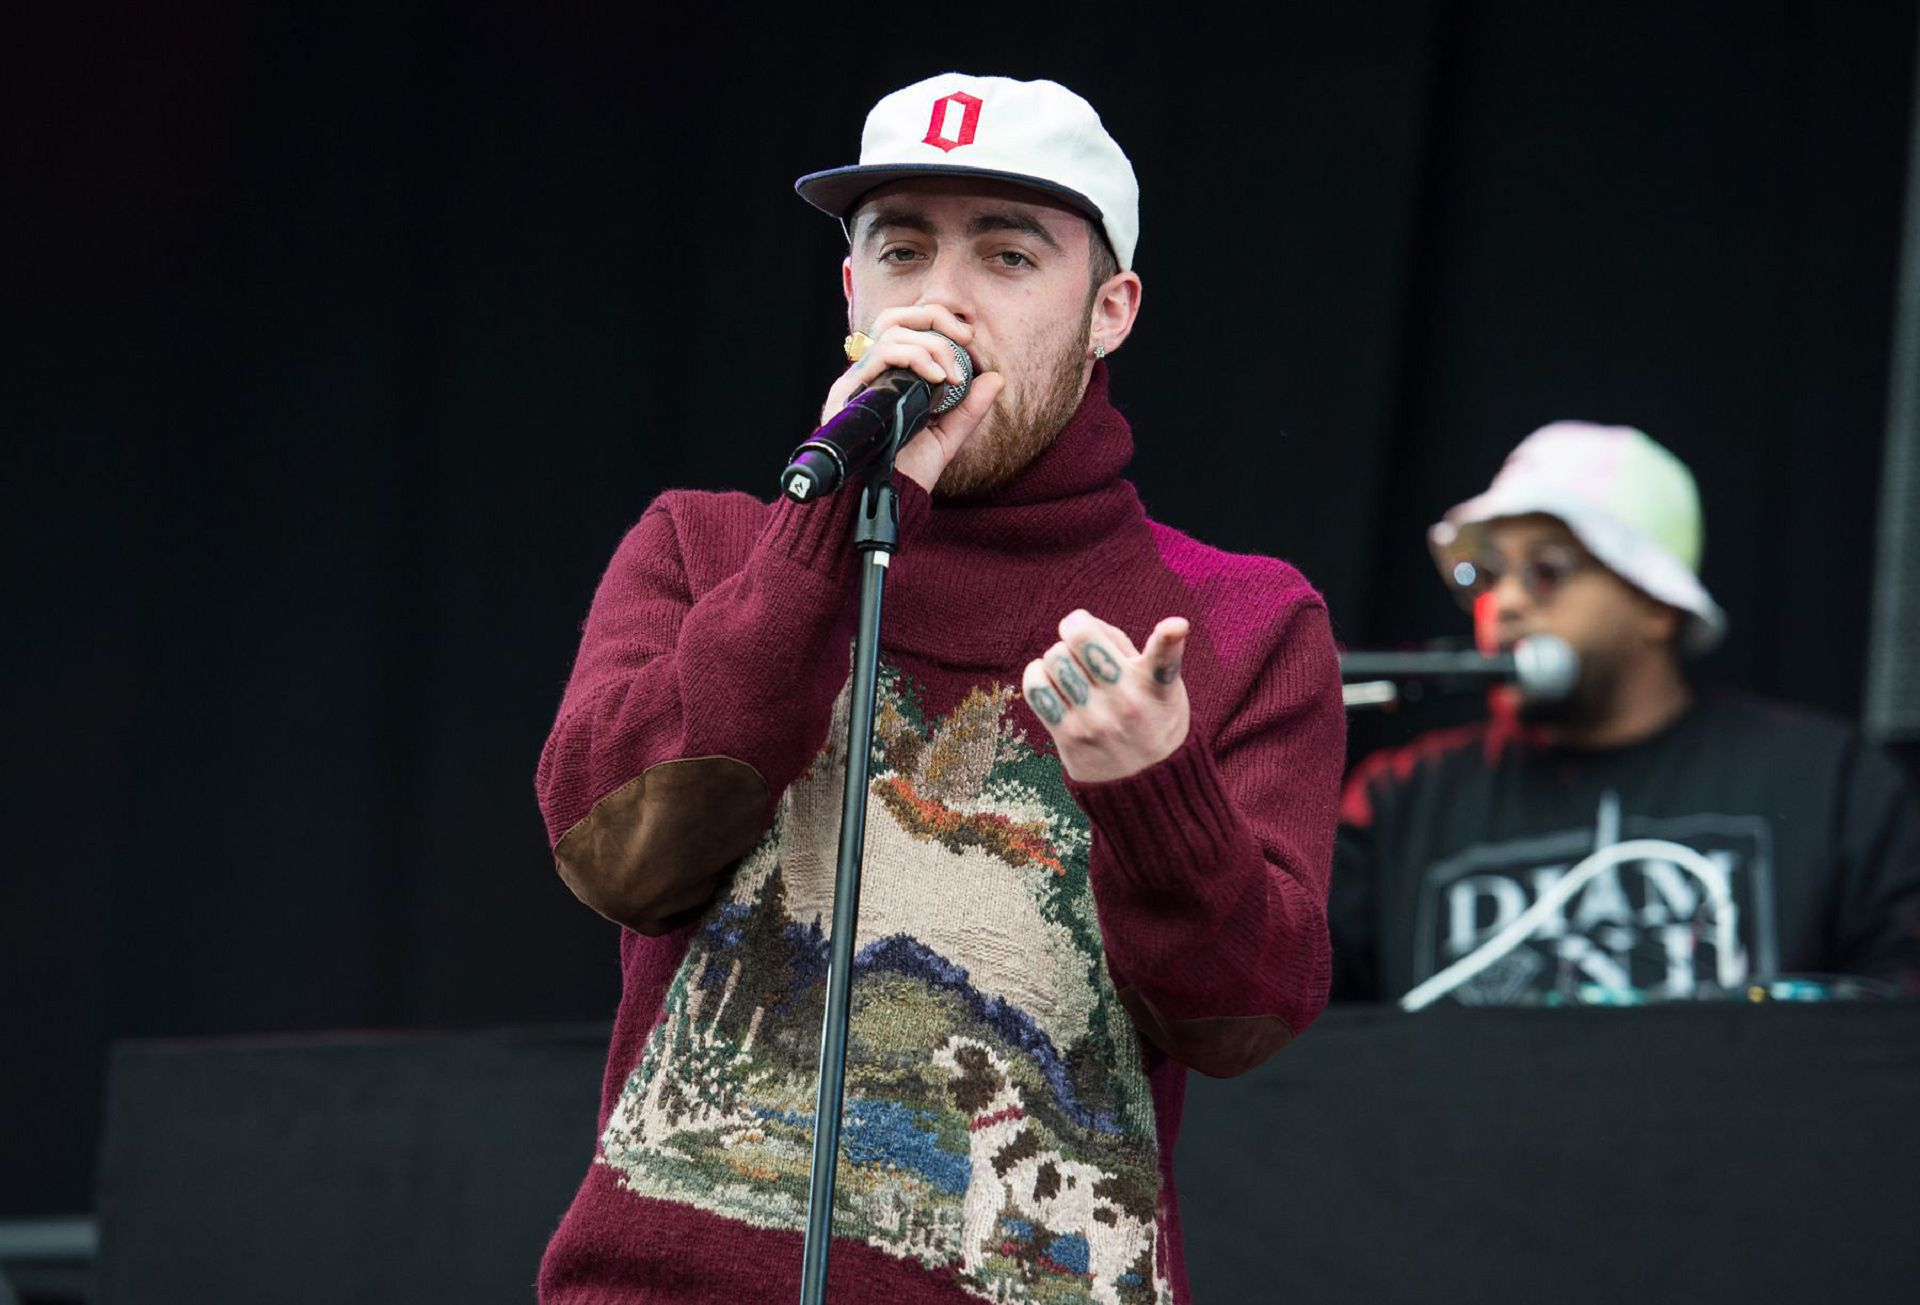 Mac Miller Wallpapers Images Photos Pictures Backgrounds